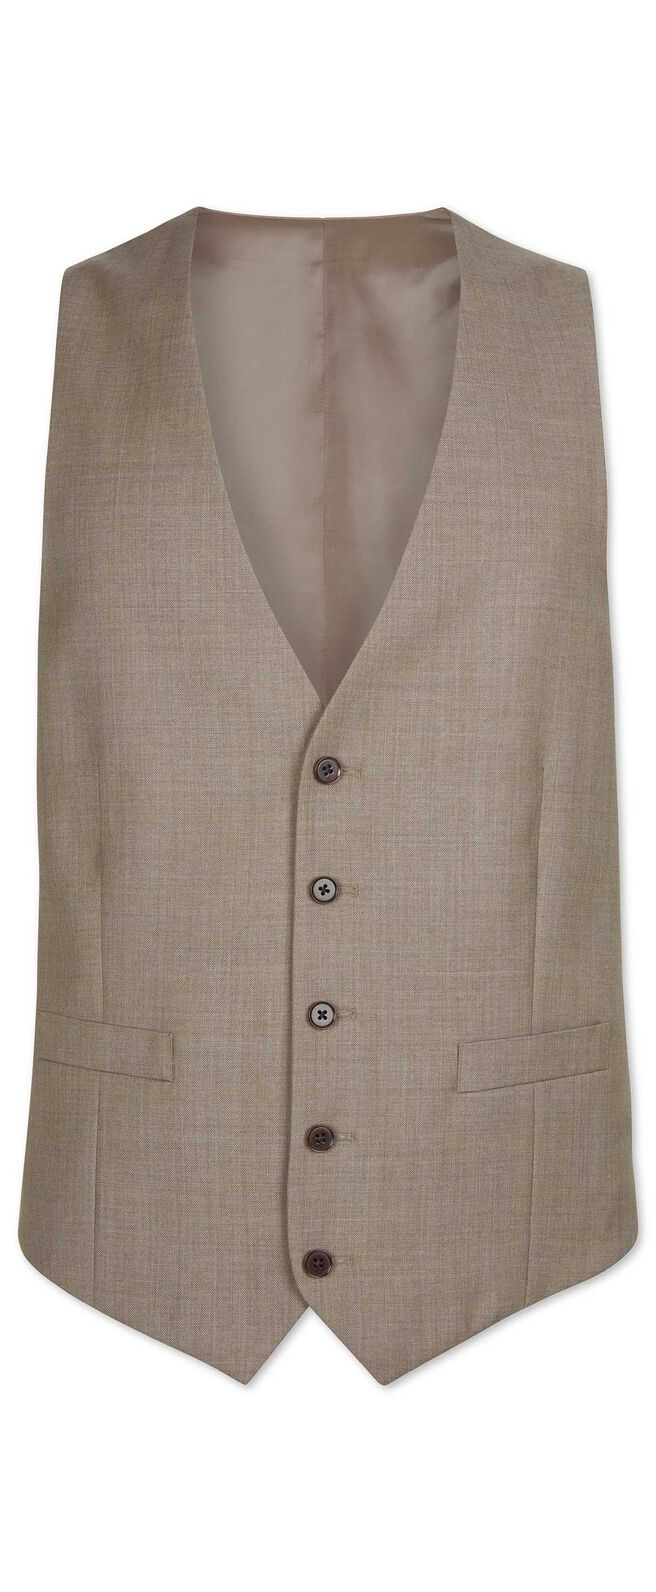 Fawn classic fit twill business suit